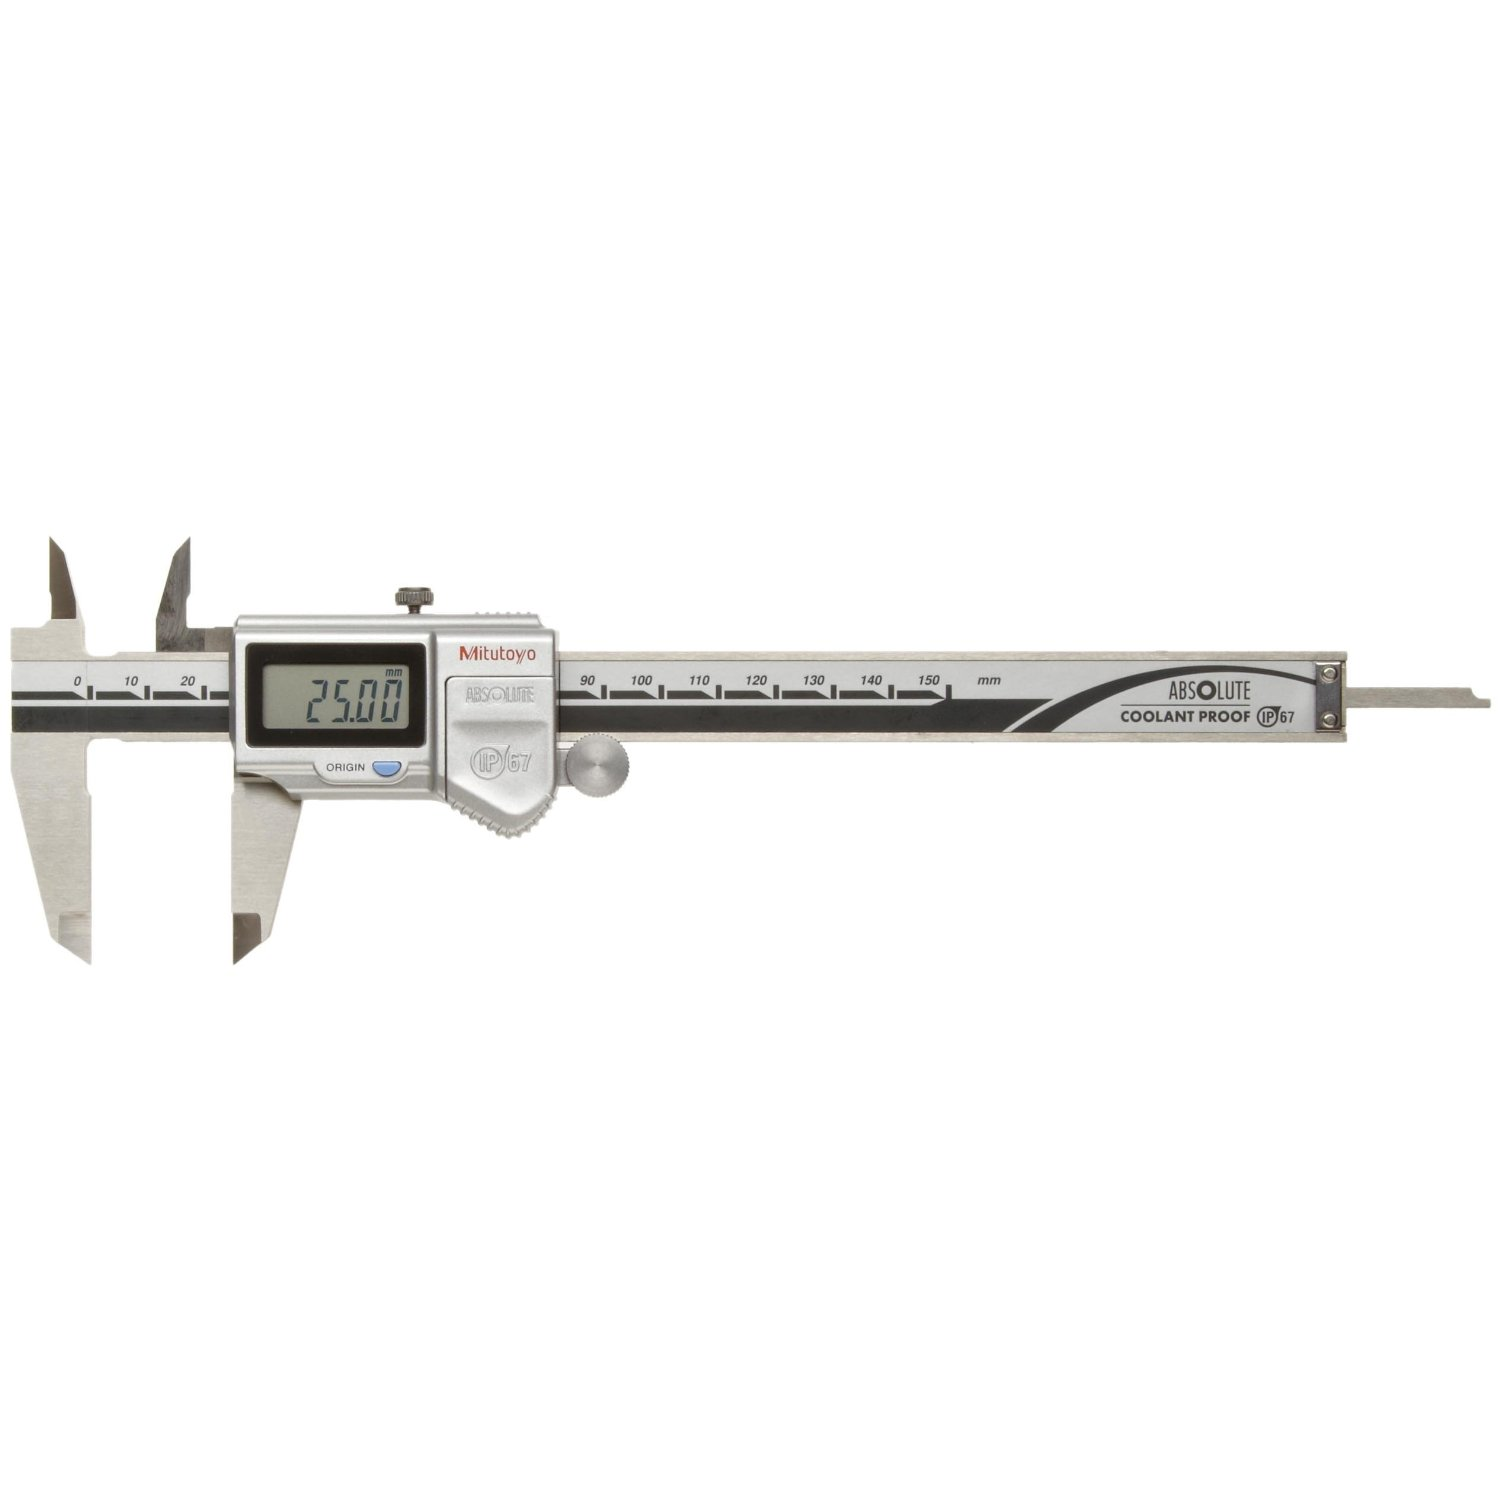 ABSOLUTE Coolant Proof Caliper SERIES 500 (IP67)